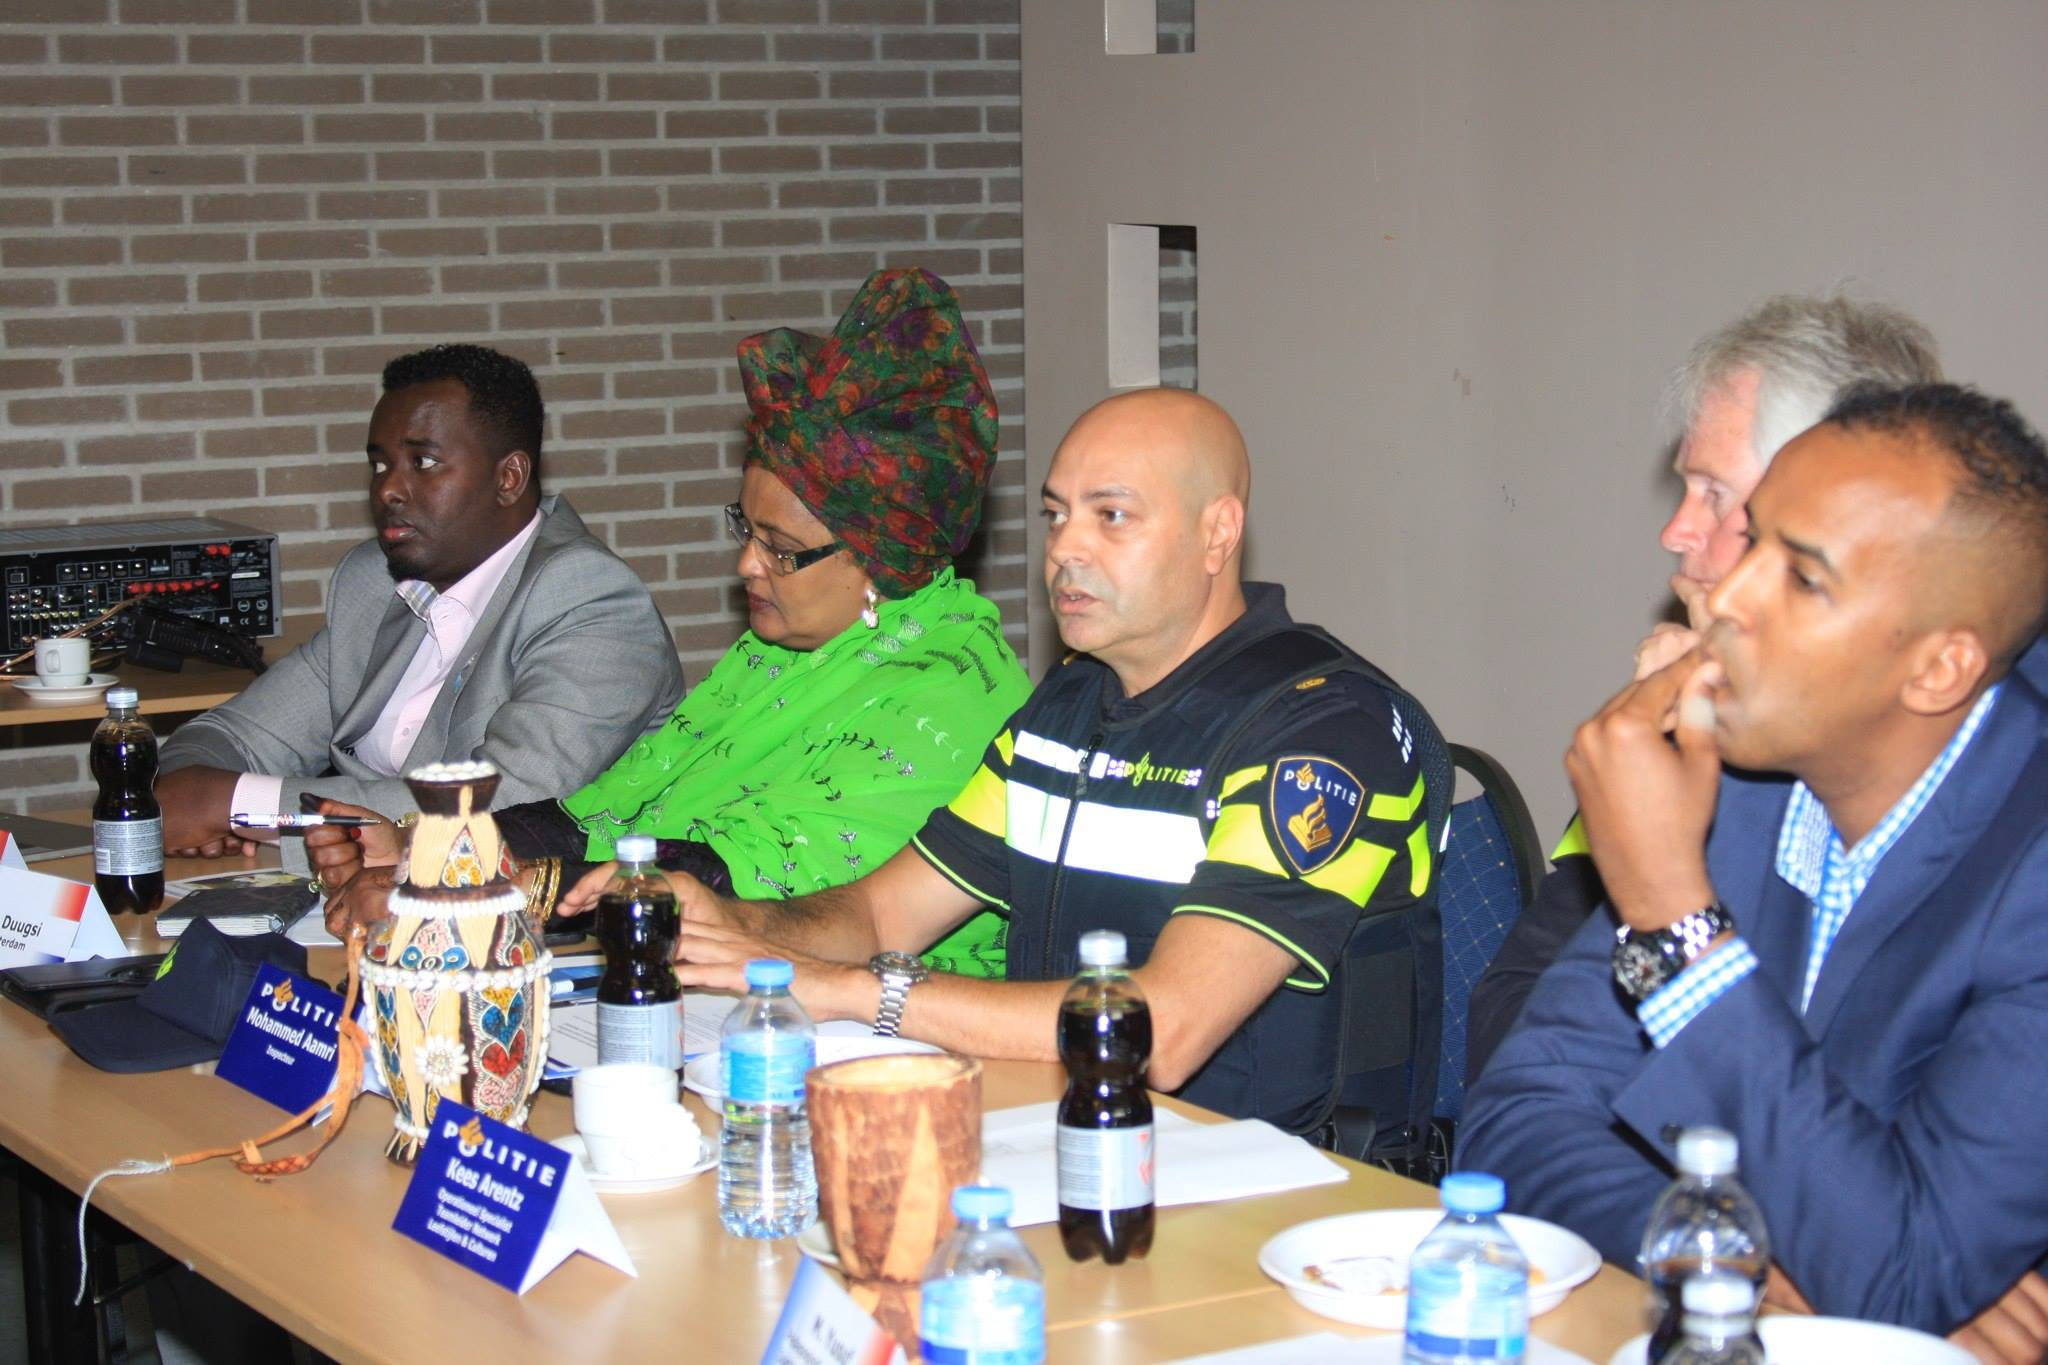 Somali community and Dutch police discuss on Islamic radicalism